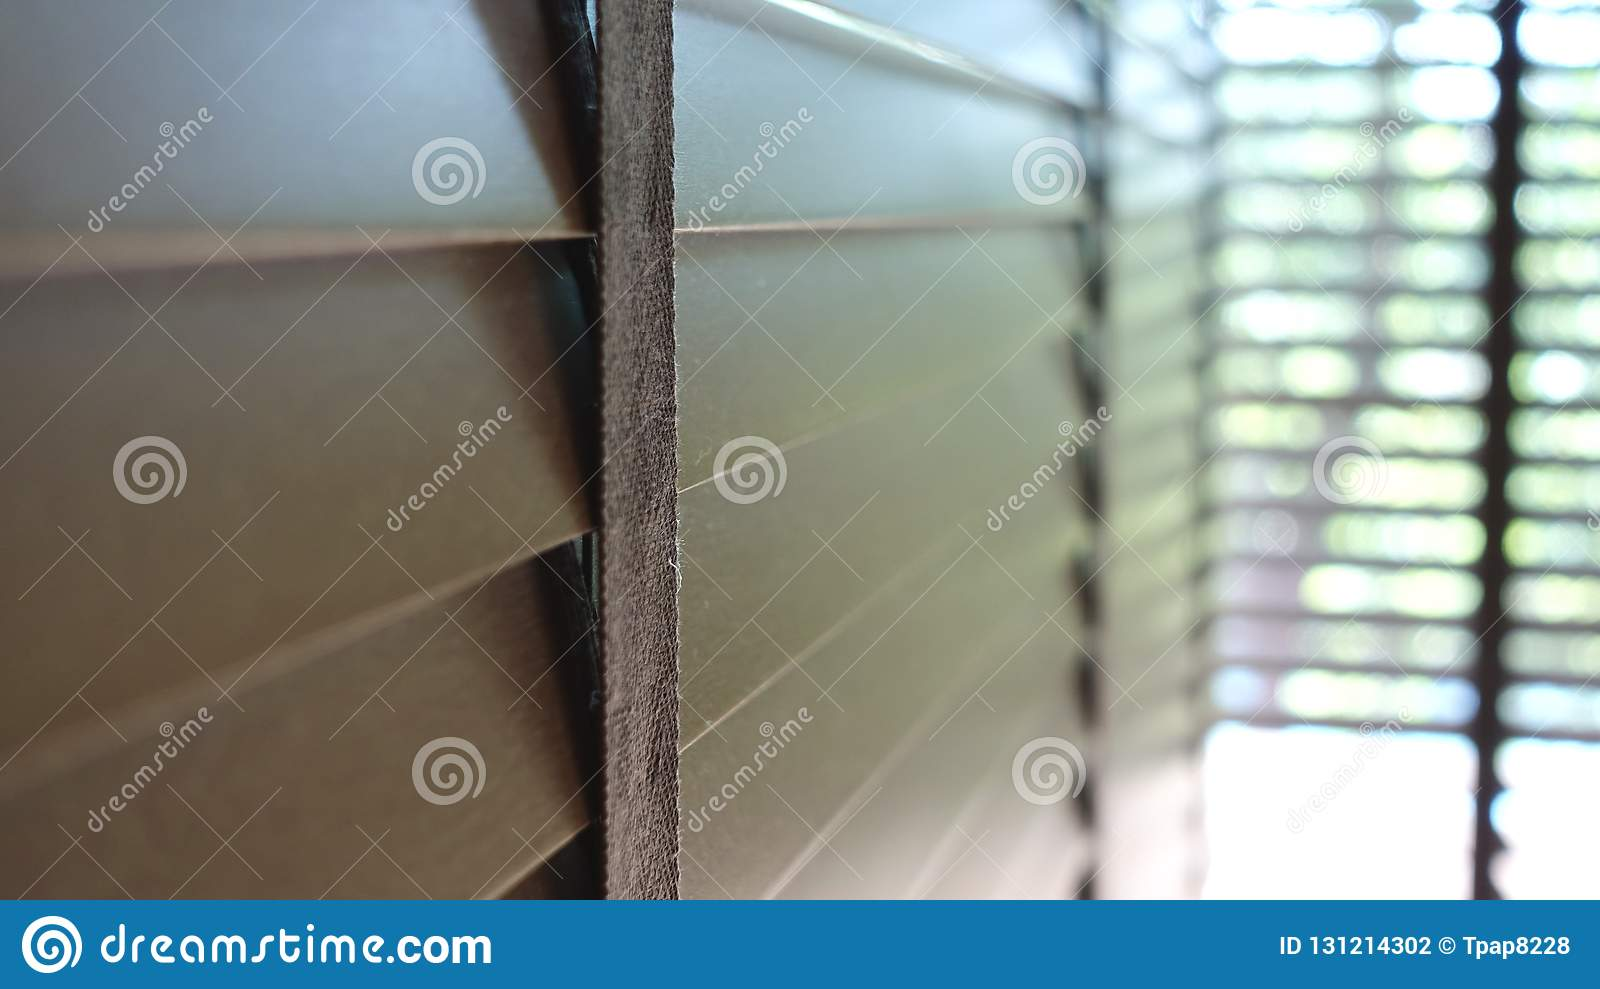 Blinds Evening Sun Light Outside Window Blinds Sunshine And Shadow On Window Blind Decorative Interior In Home Stock Photo Image Of Evening Angle 131214302